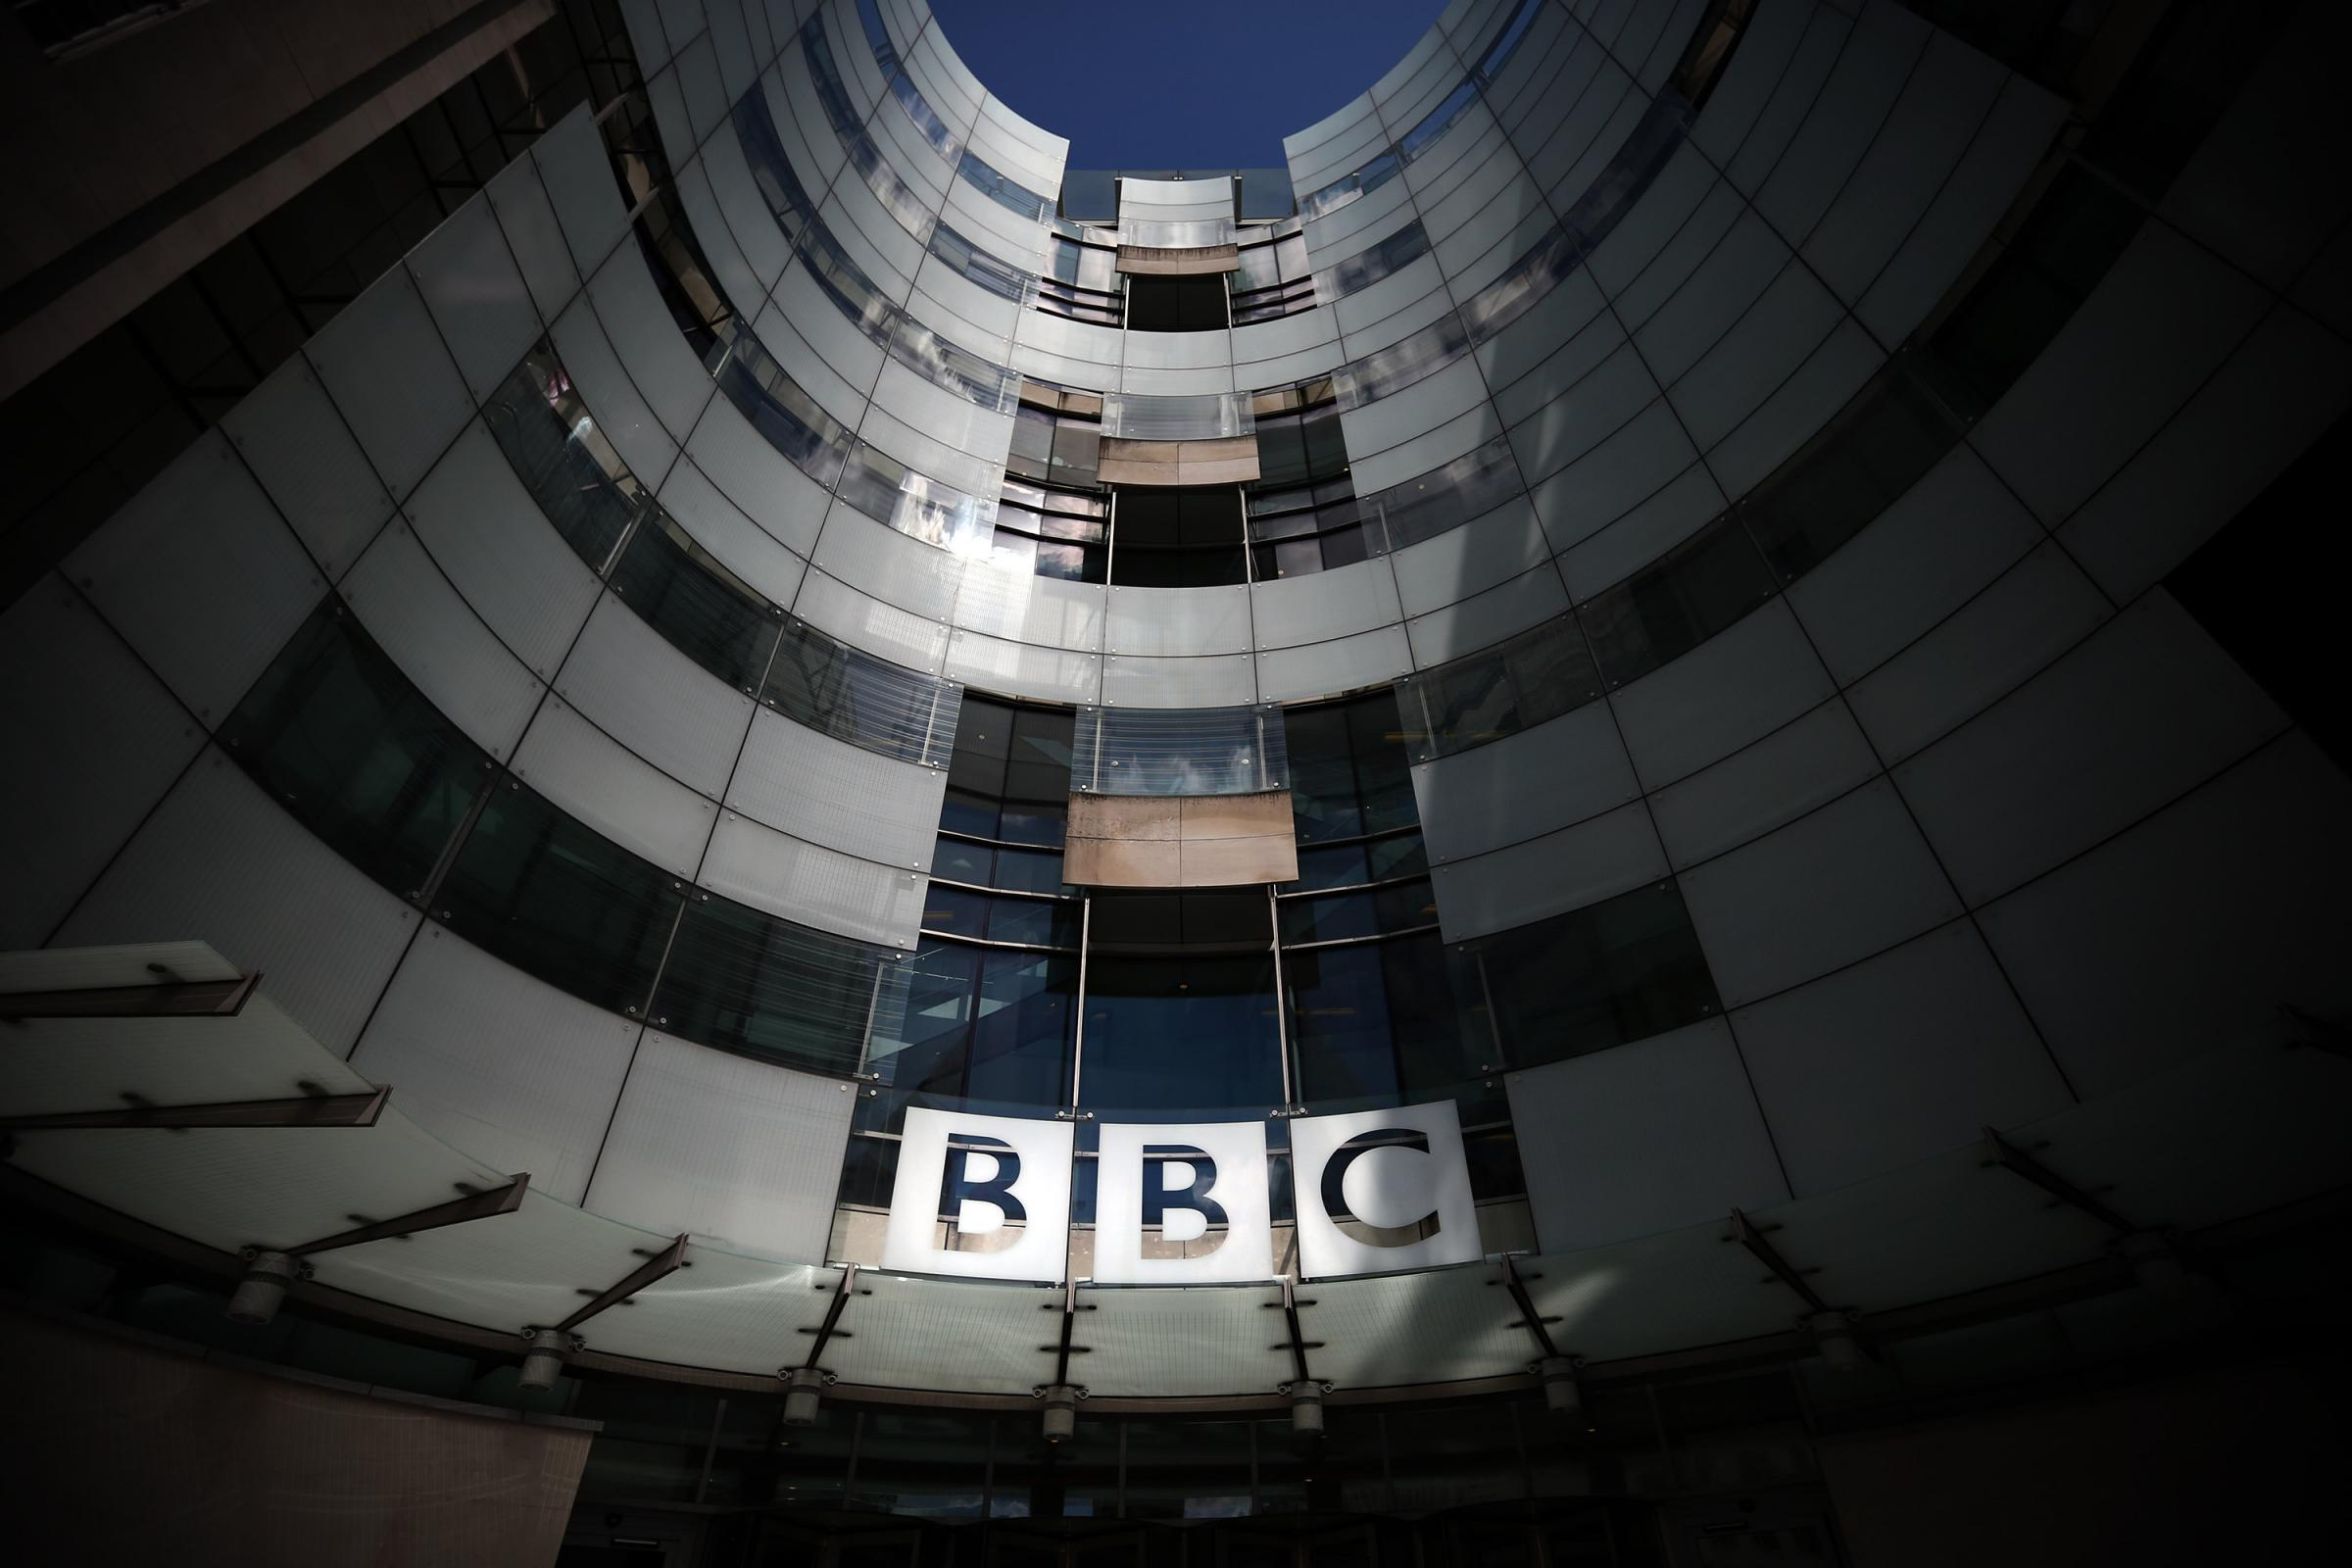 The BBC must live up to its responsibilities